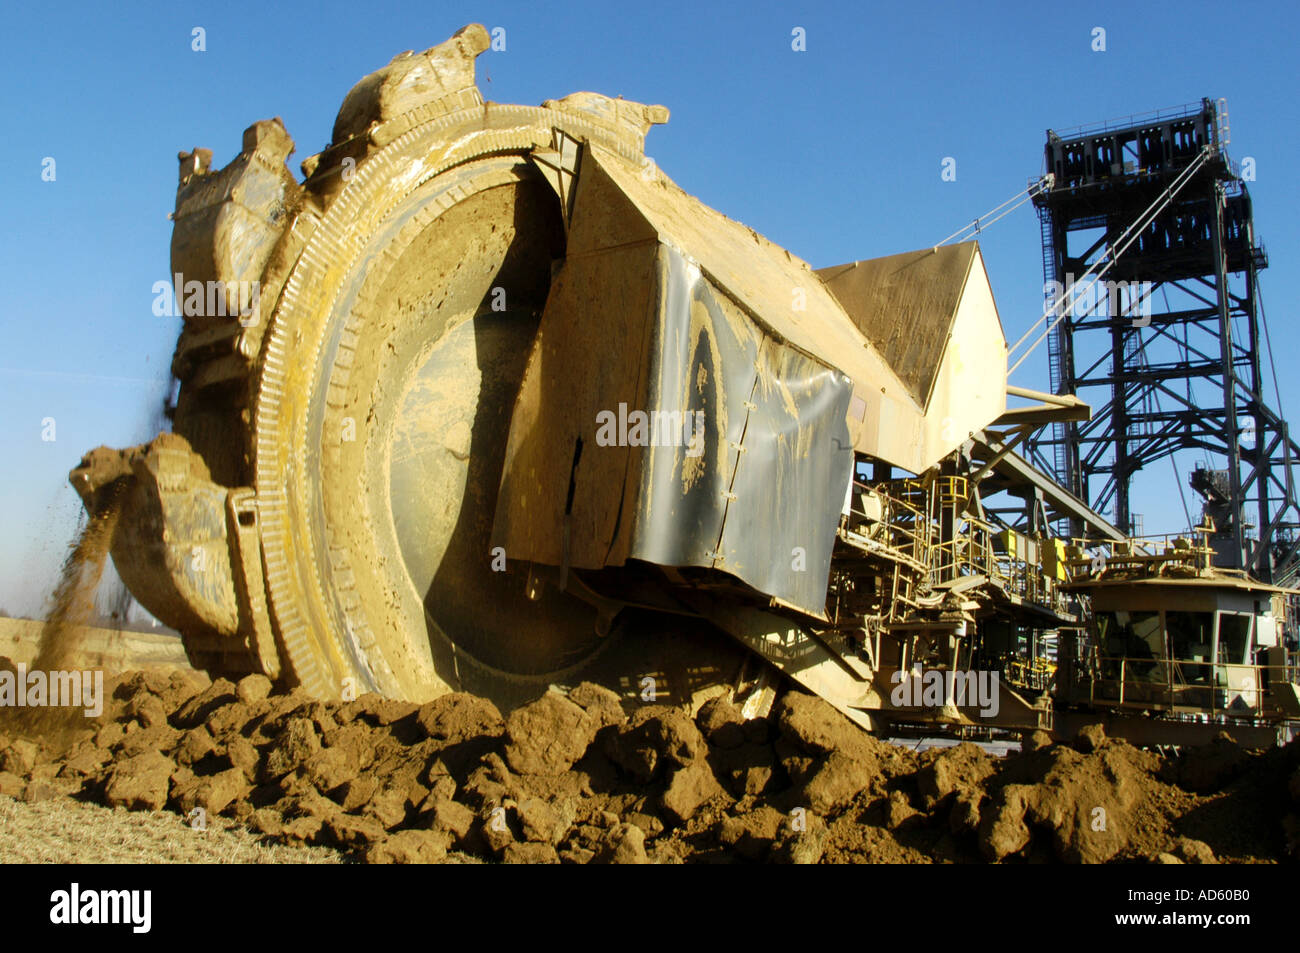 Excavator at the coal mine Garzweiler in Germany Stock Photo